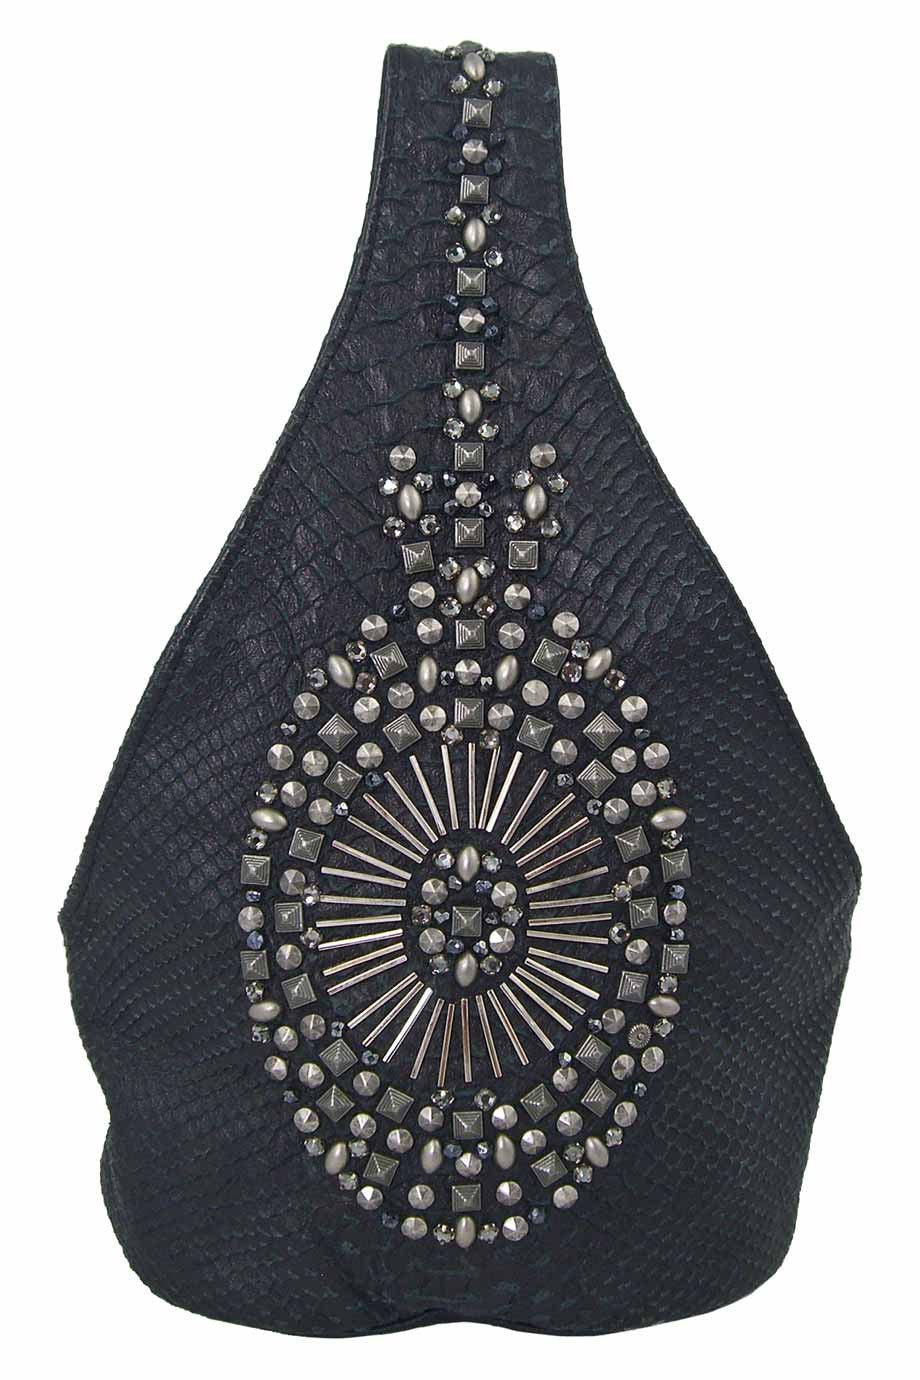 Simone Camille Studded Black Snakeskin Mini Bucket Bag - Style Therapy  - 1